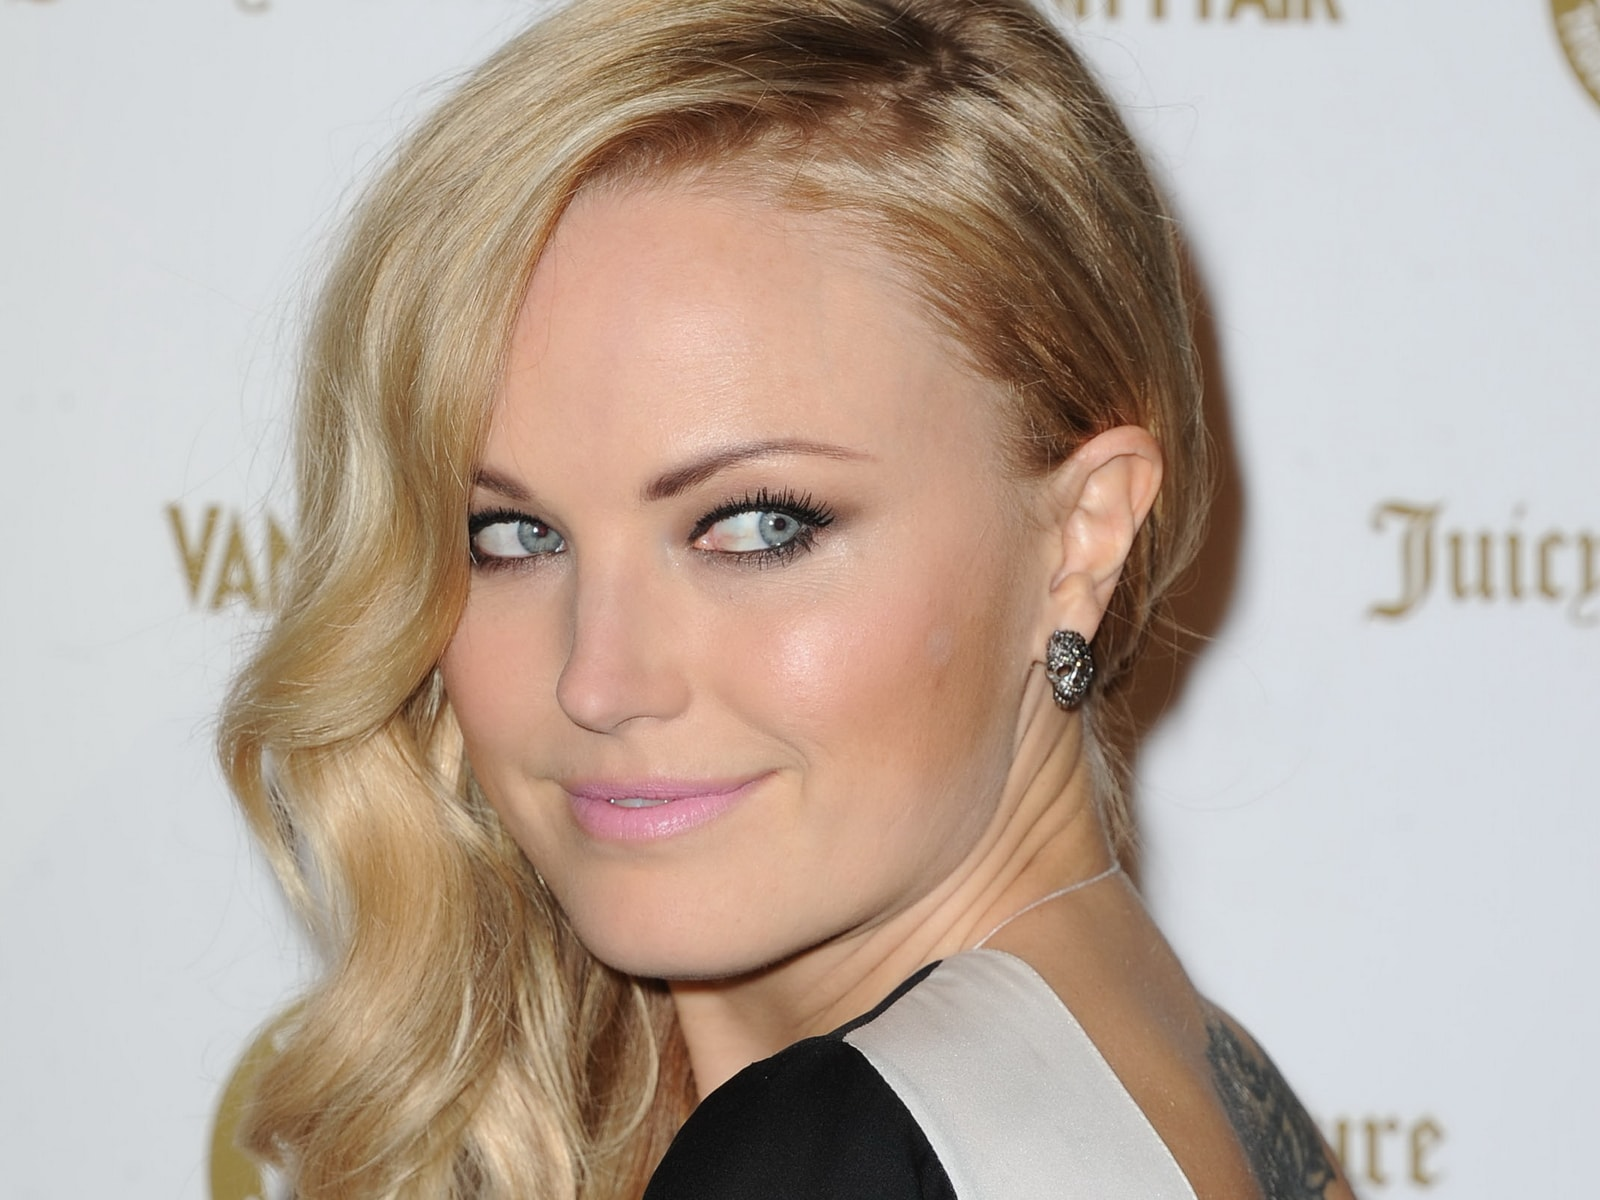 Malin Akerman Wallpapers hd